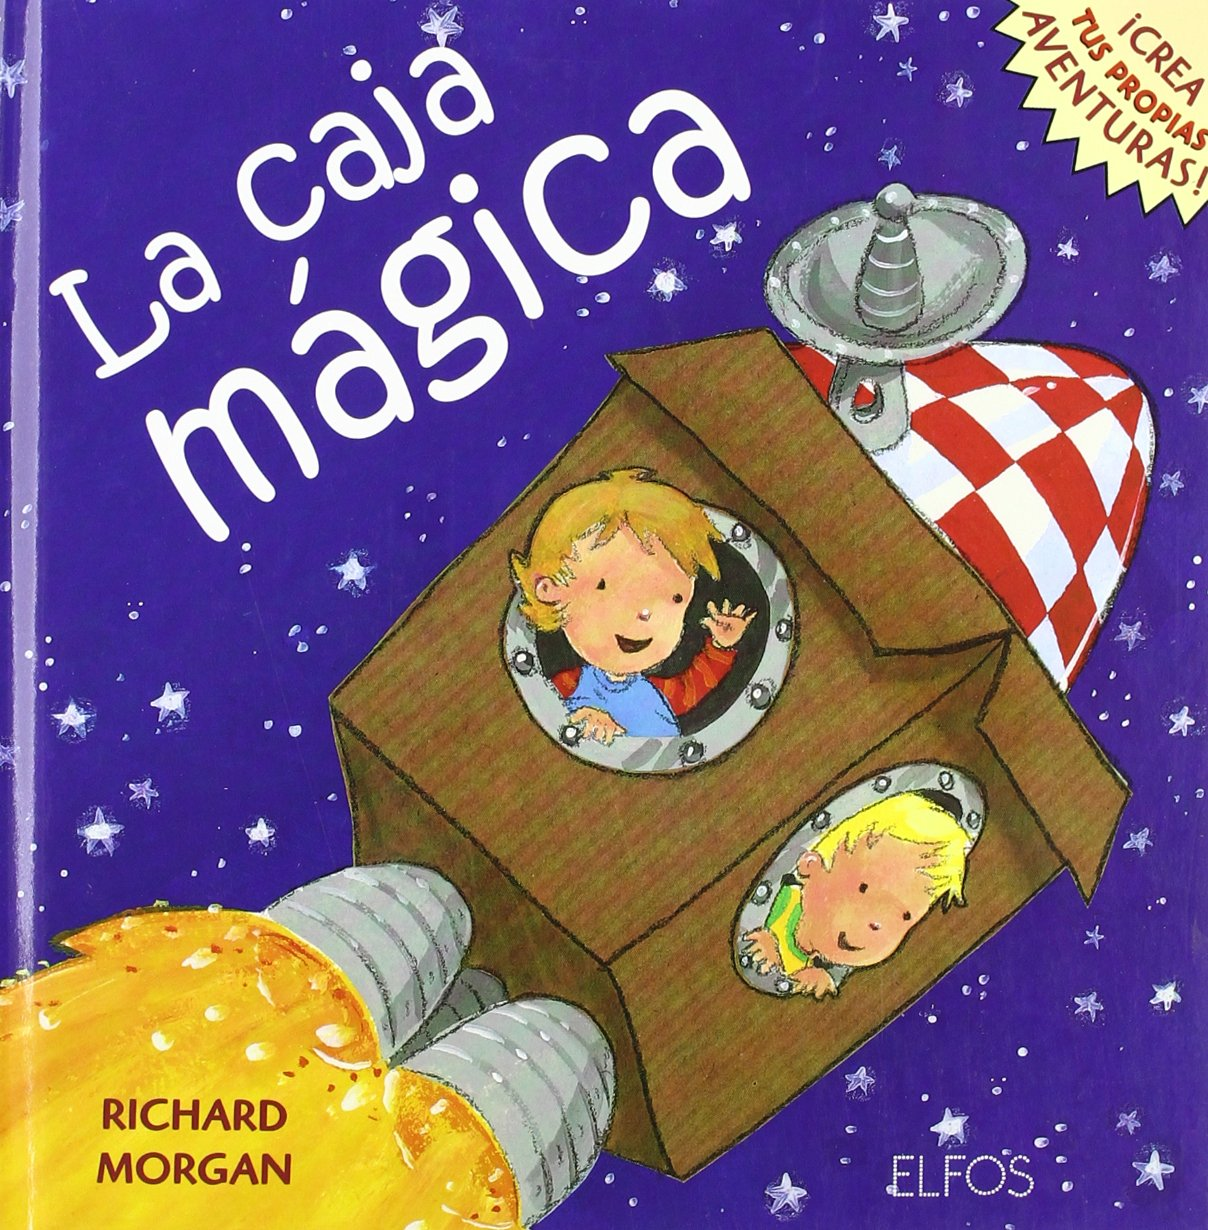 La caja mágica: Amazon.es: Morgan, Richard: Libros